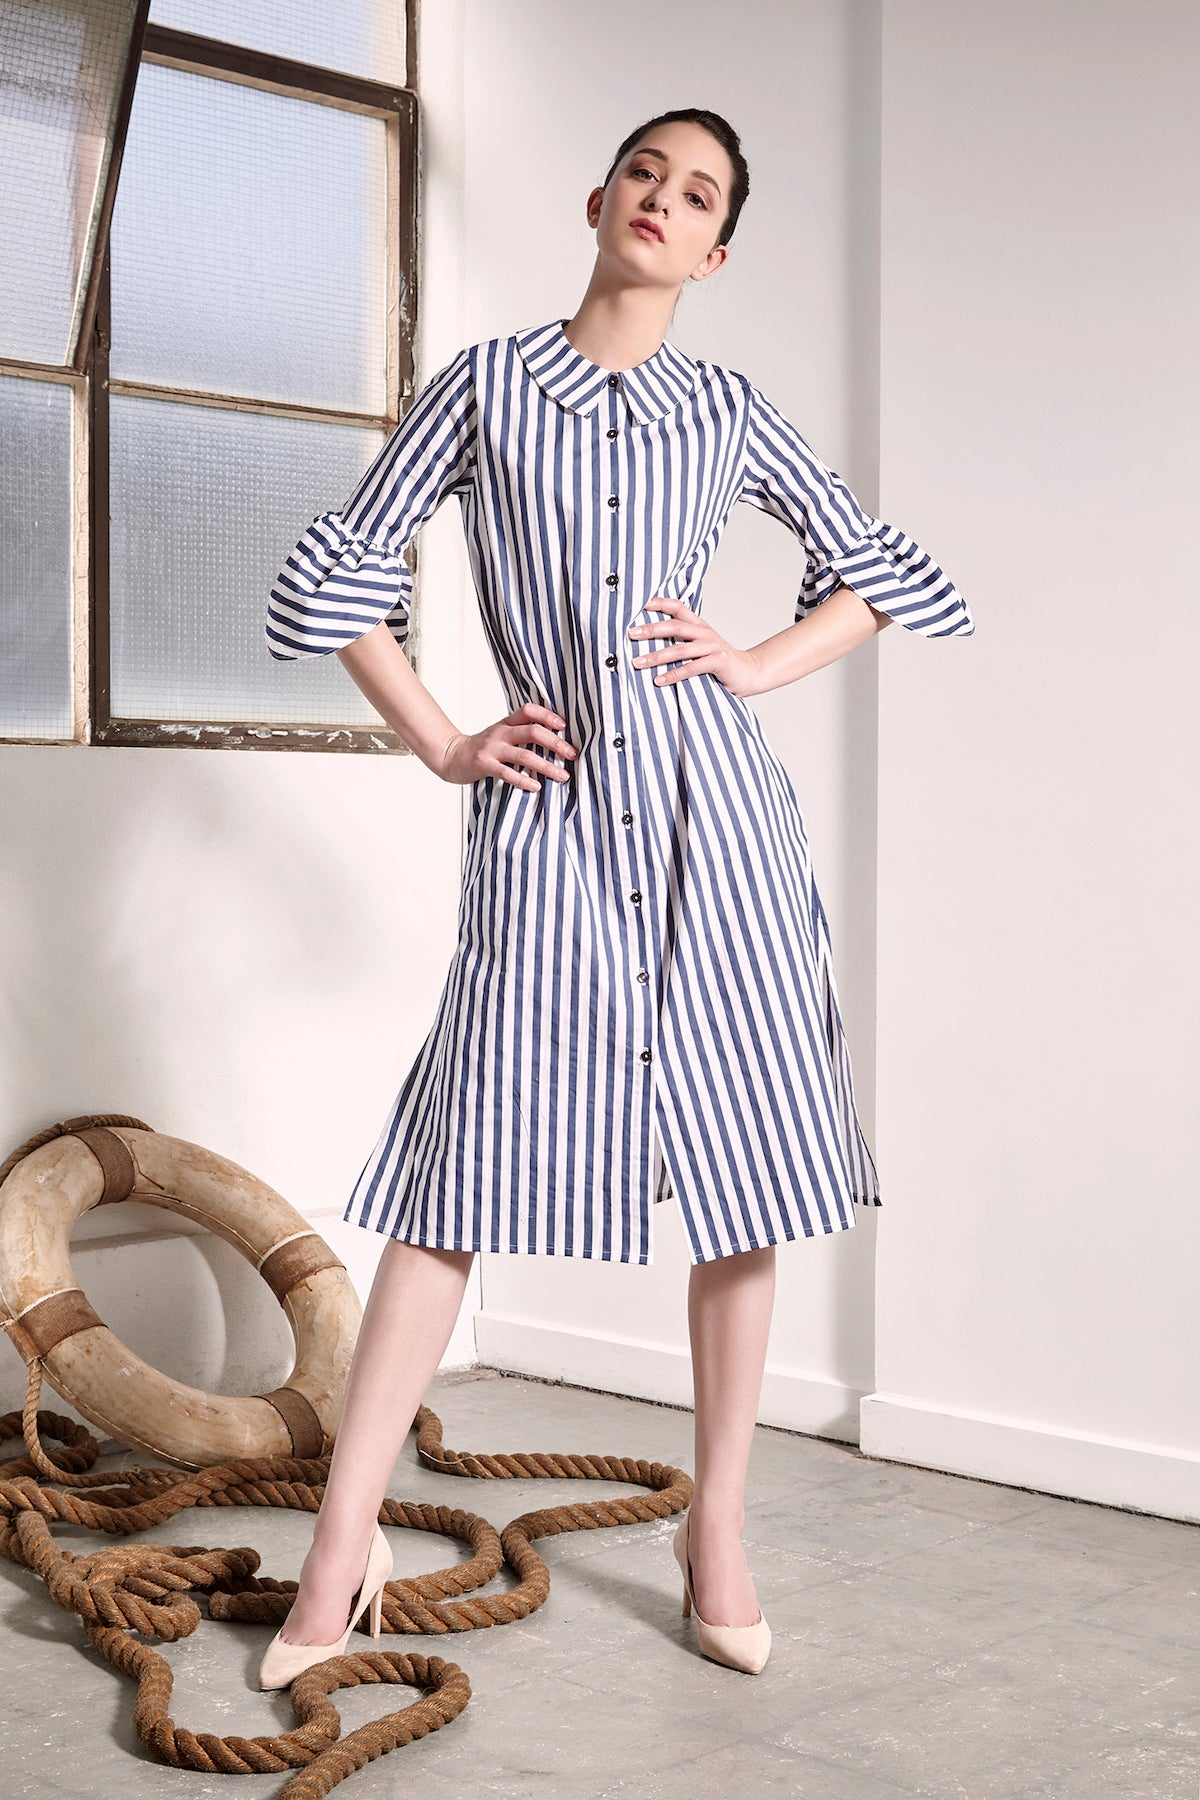 Striped Ashbury Dress - Dresses - The Fashion Advocate - Ethical Australian fashion online like - Melbourne fashion blogger